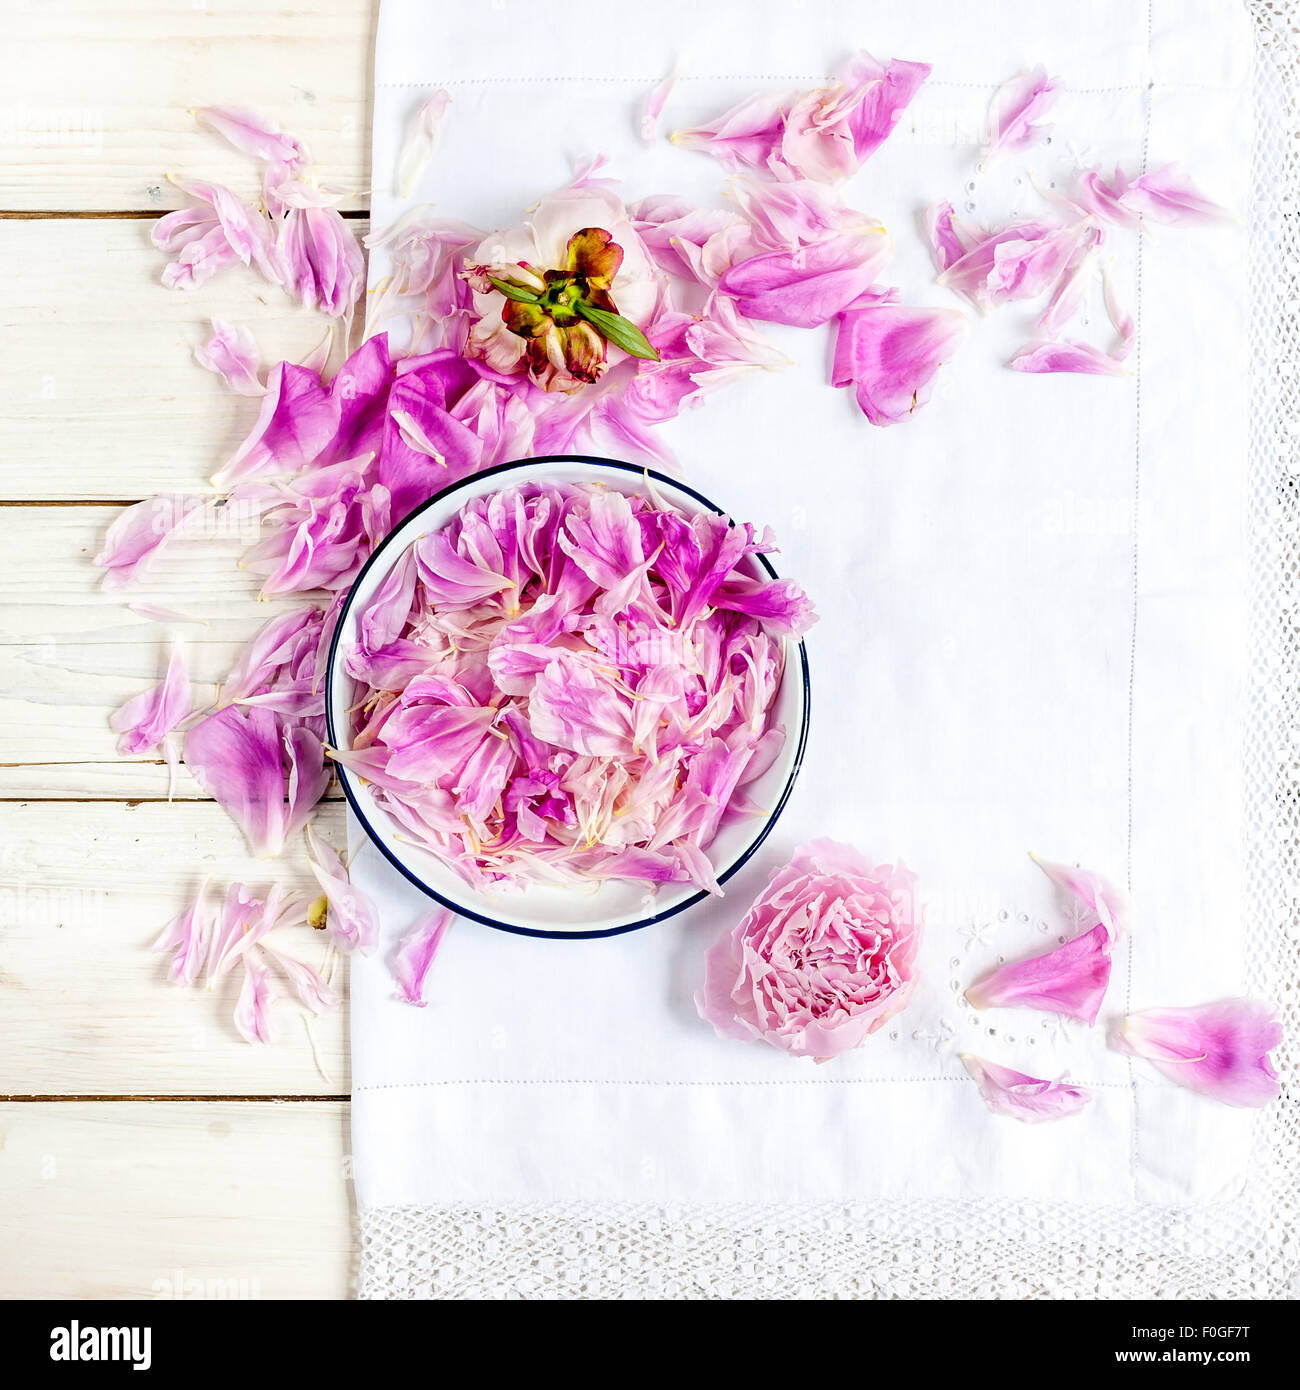 a white plate with pink peony petals on vintage white lace tablecloth - Stock Image